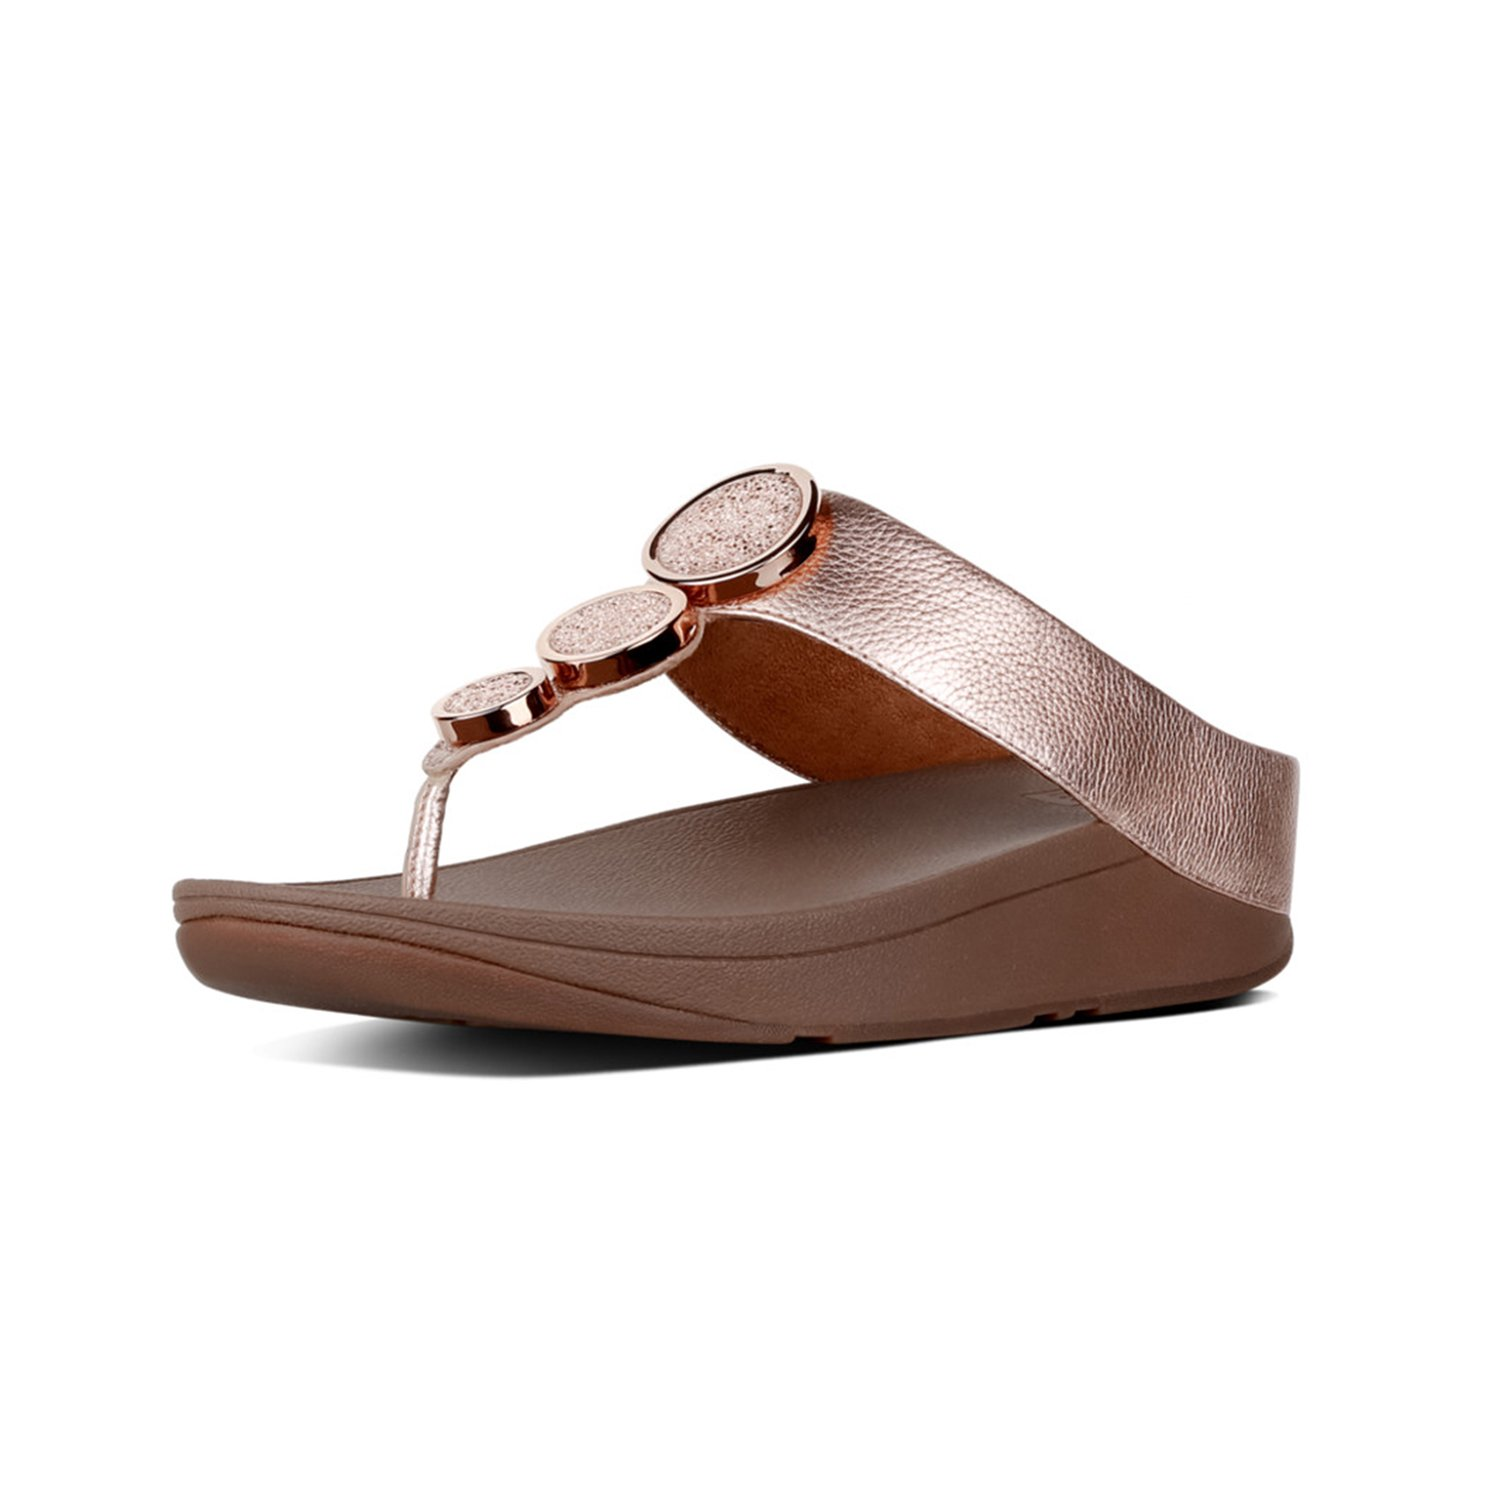 FitFlop Women's Halo Toe Thong Sandals Rose Gold 8